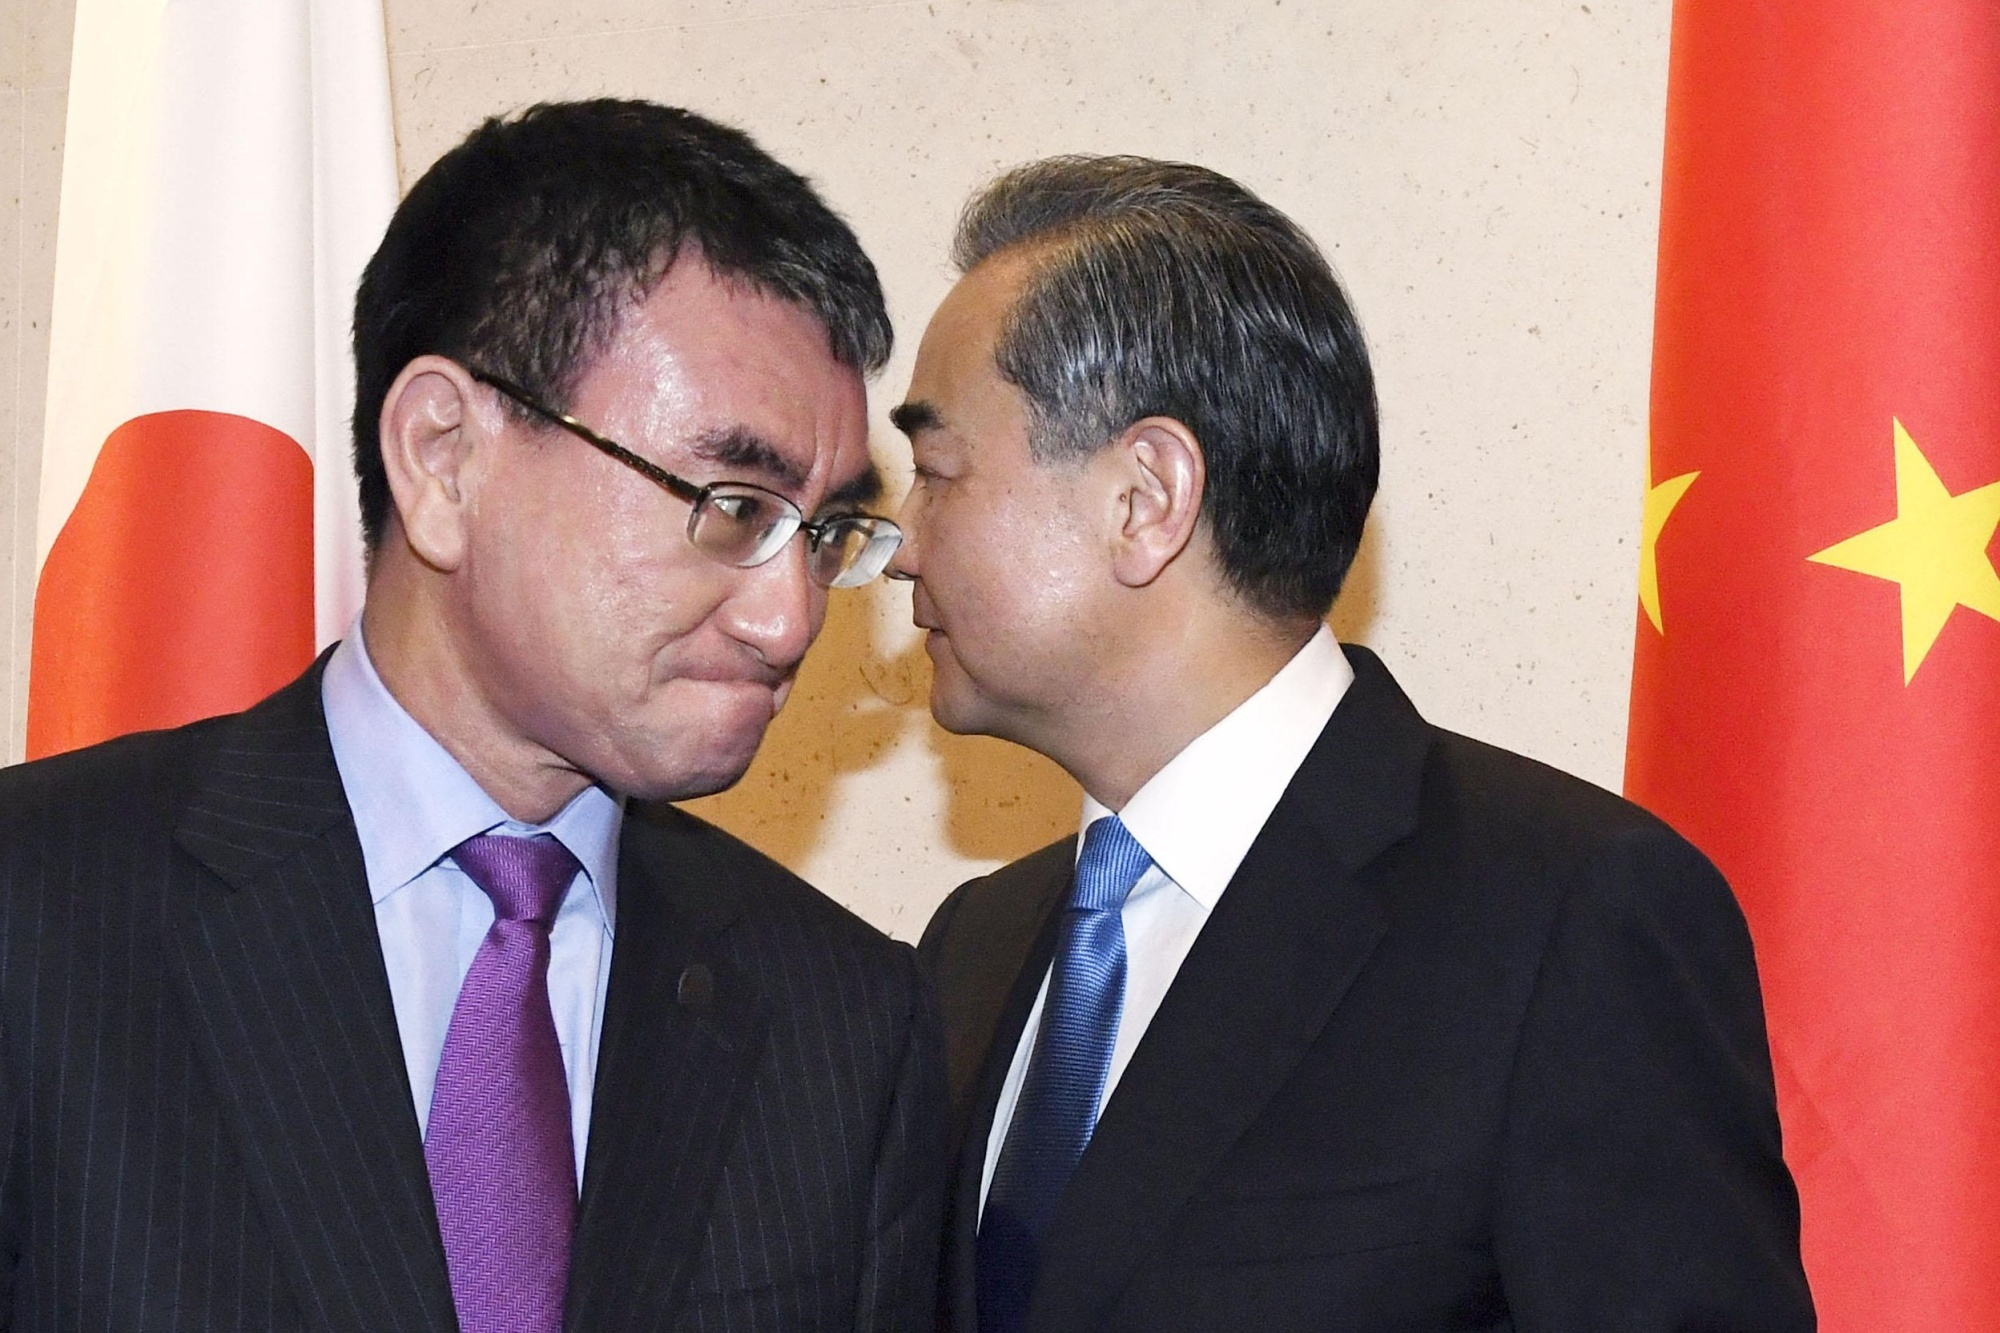 Foreign Minister Taro Kono (left) and his Chinese counterpart Wang Yi pass each other before holding talks Thursday in Singapore. | KYODO